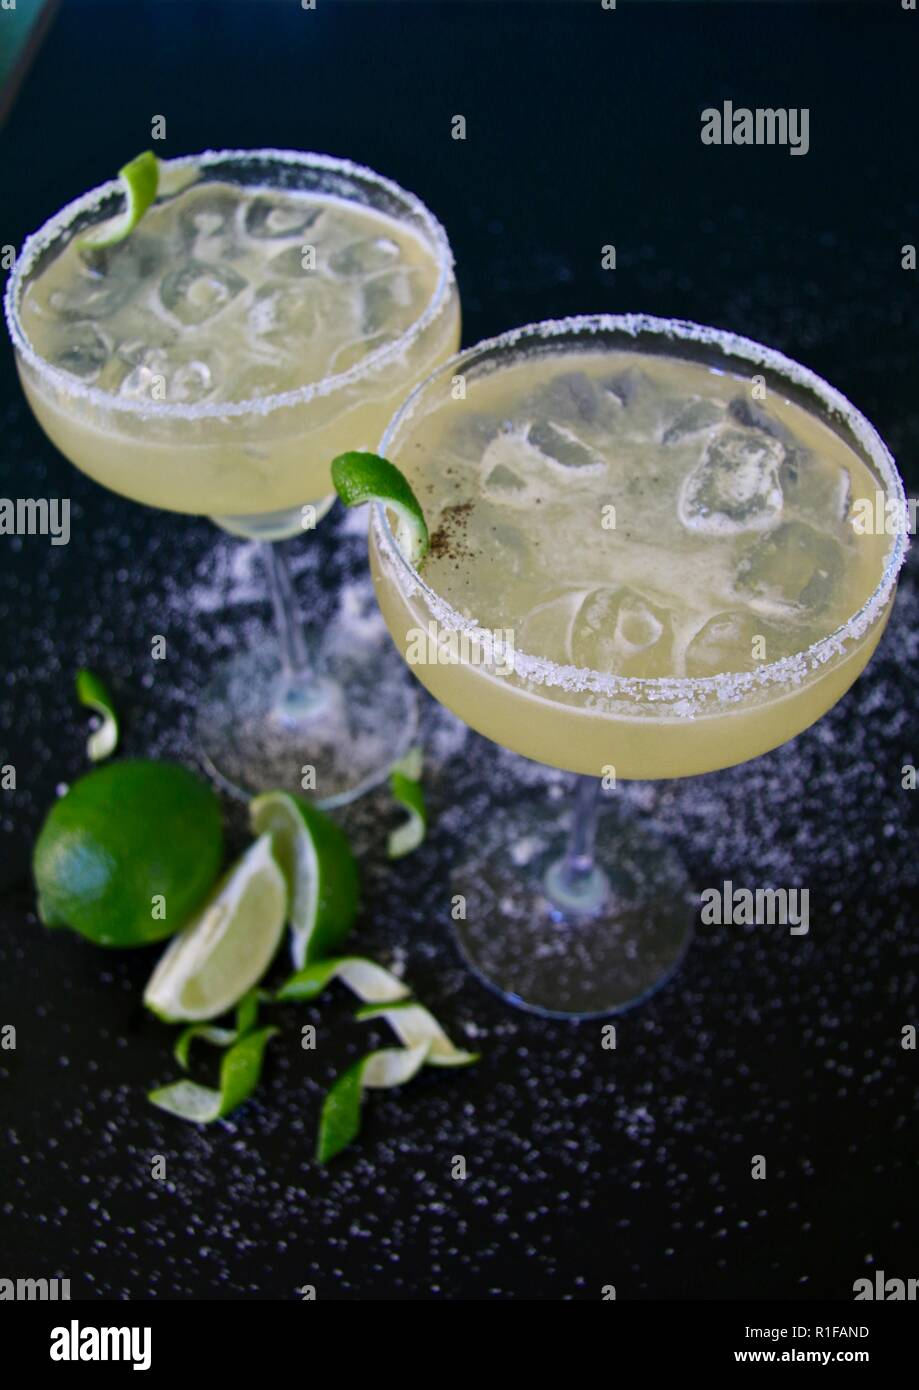 Lime margarita cocktails with lime and salt - Stock Image